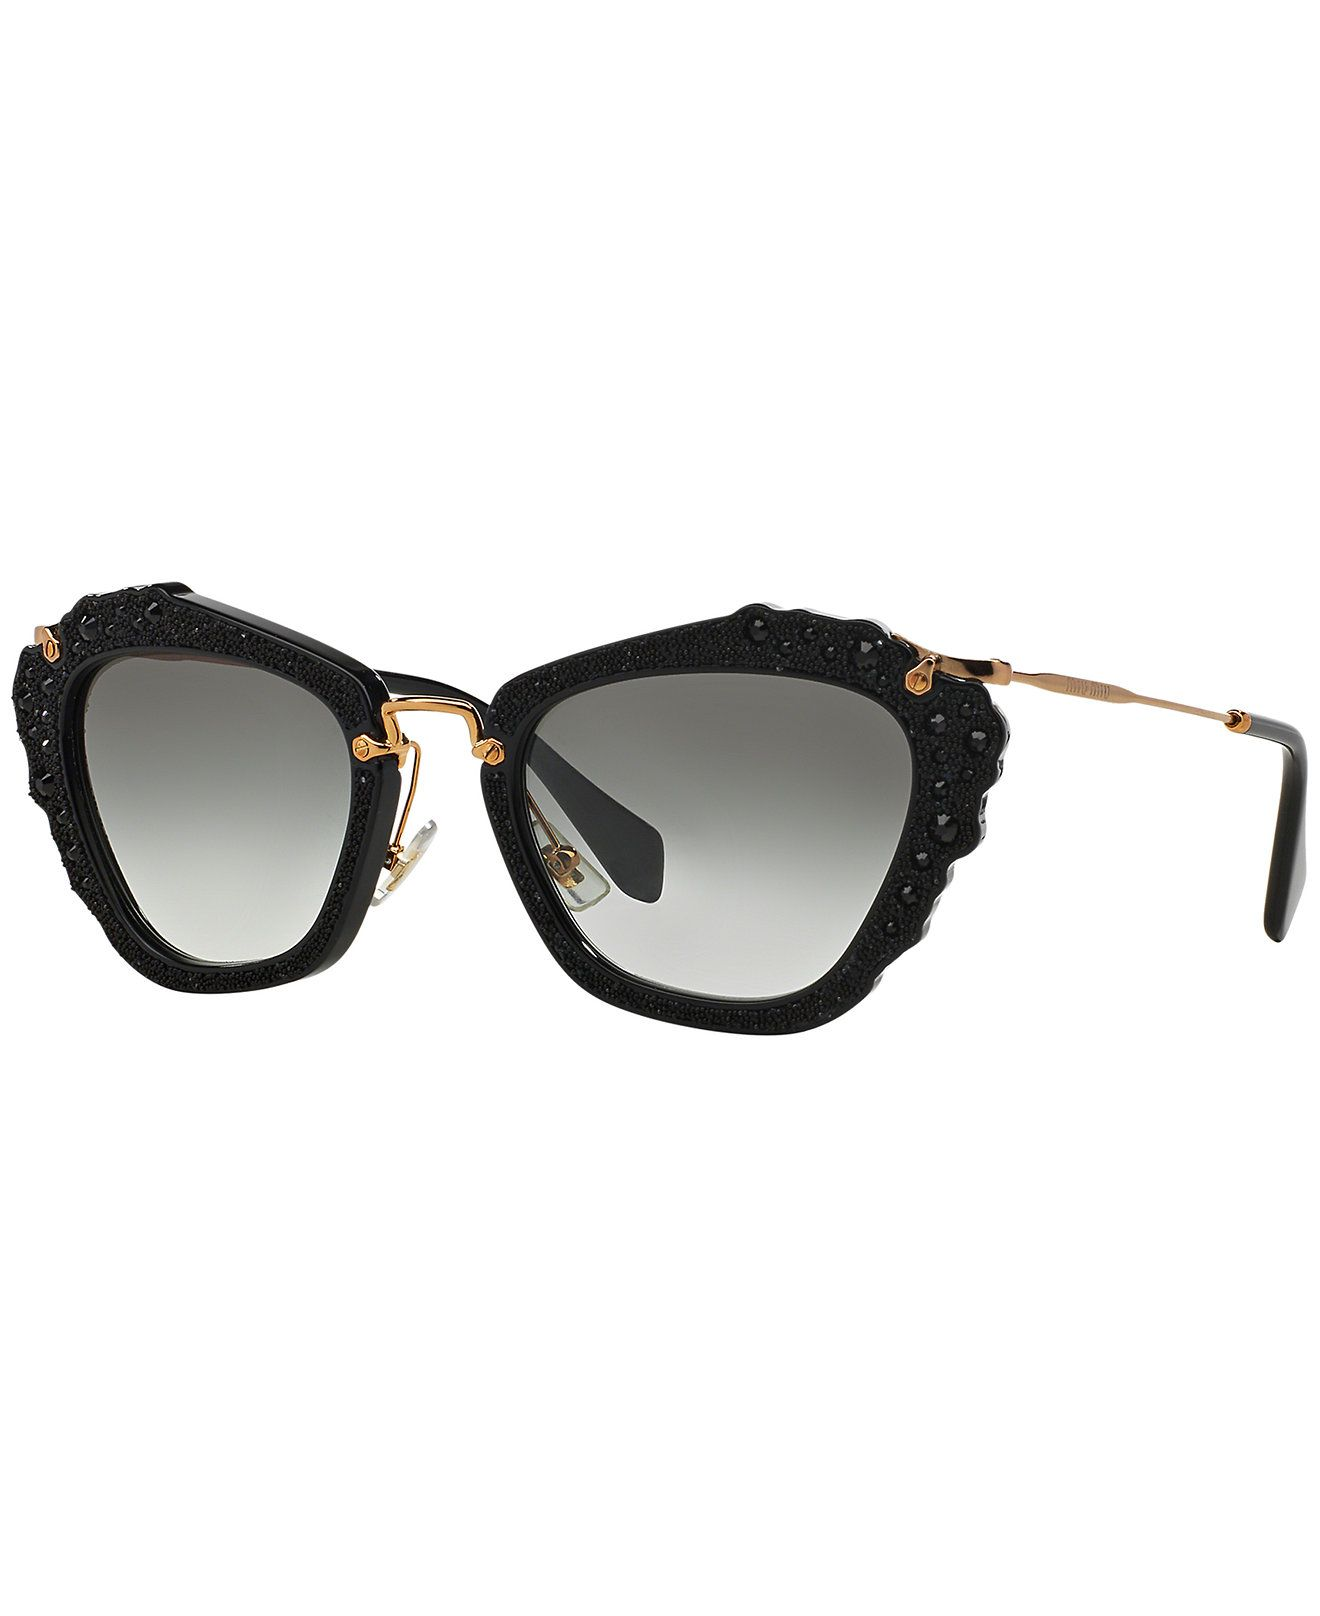 429c593effca Miu Miu Sunglasses, MIU MIU MU 04QS 55 - Sunglasses by Sunglass Hut -  Handbags & Accessories - Macy's